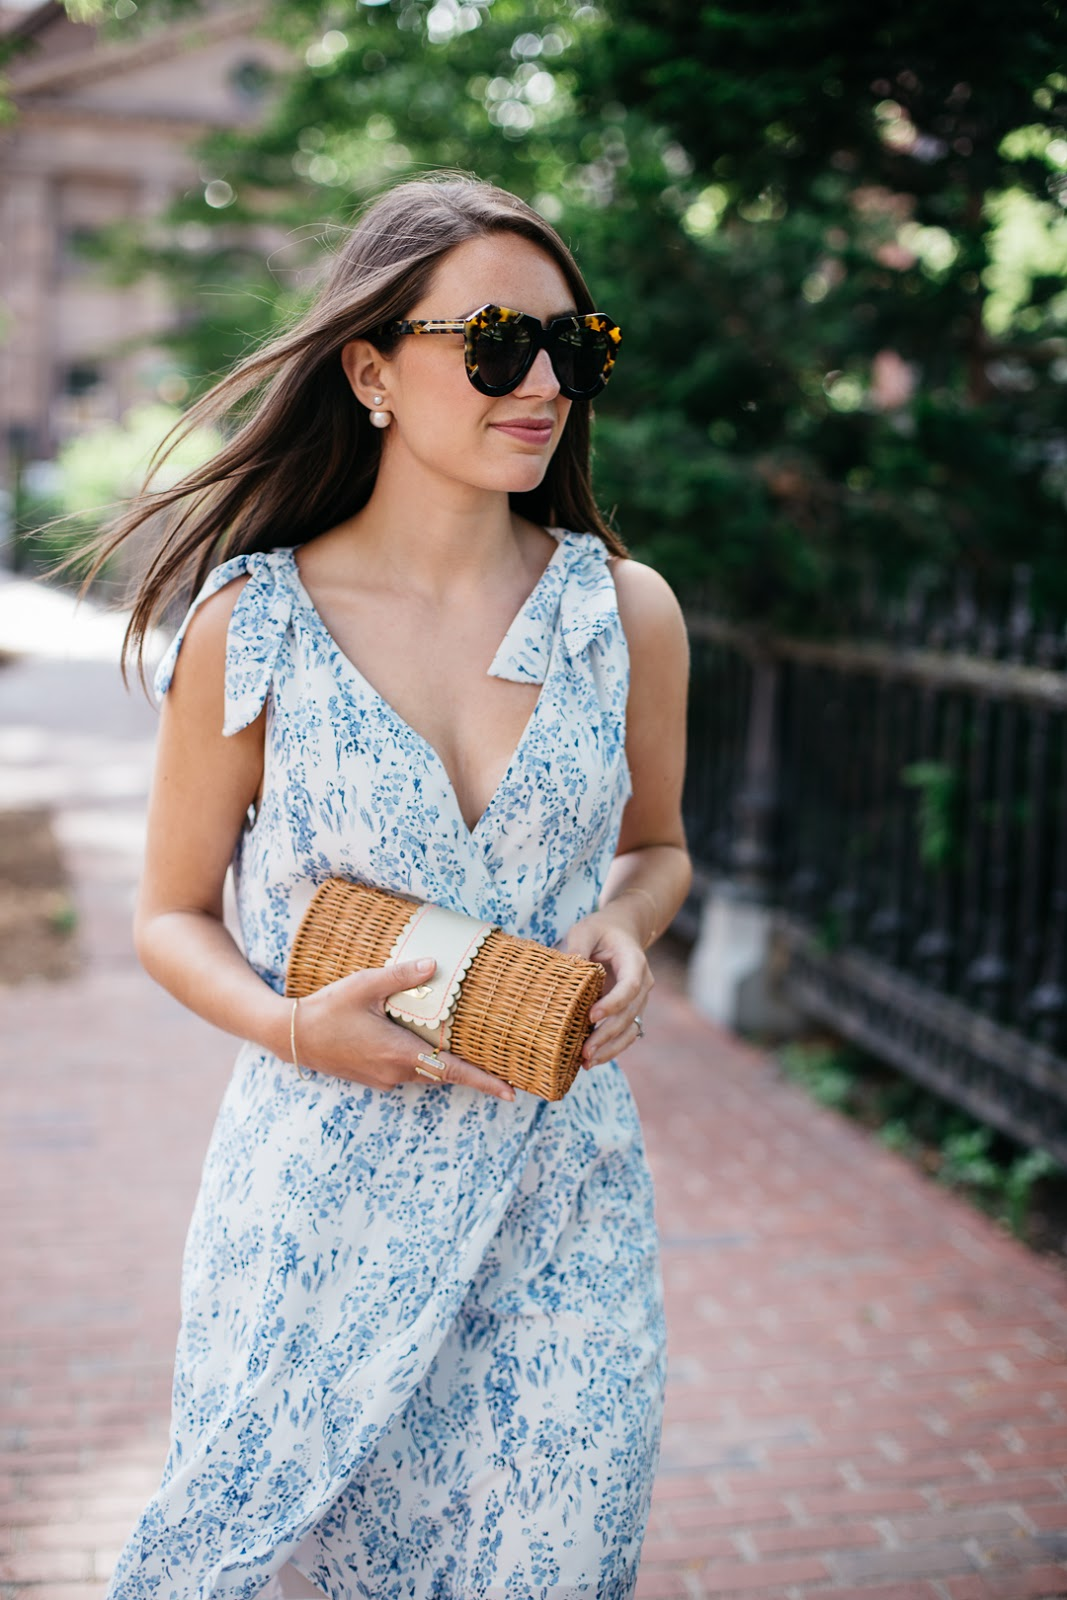 Wearing PaperCrown by Lauren Conrad and sharing some of my favorite finds of the week